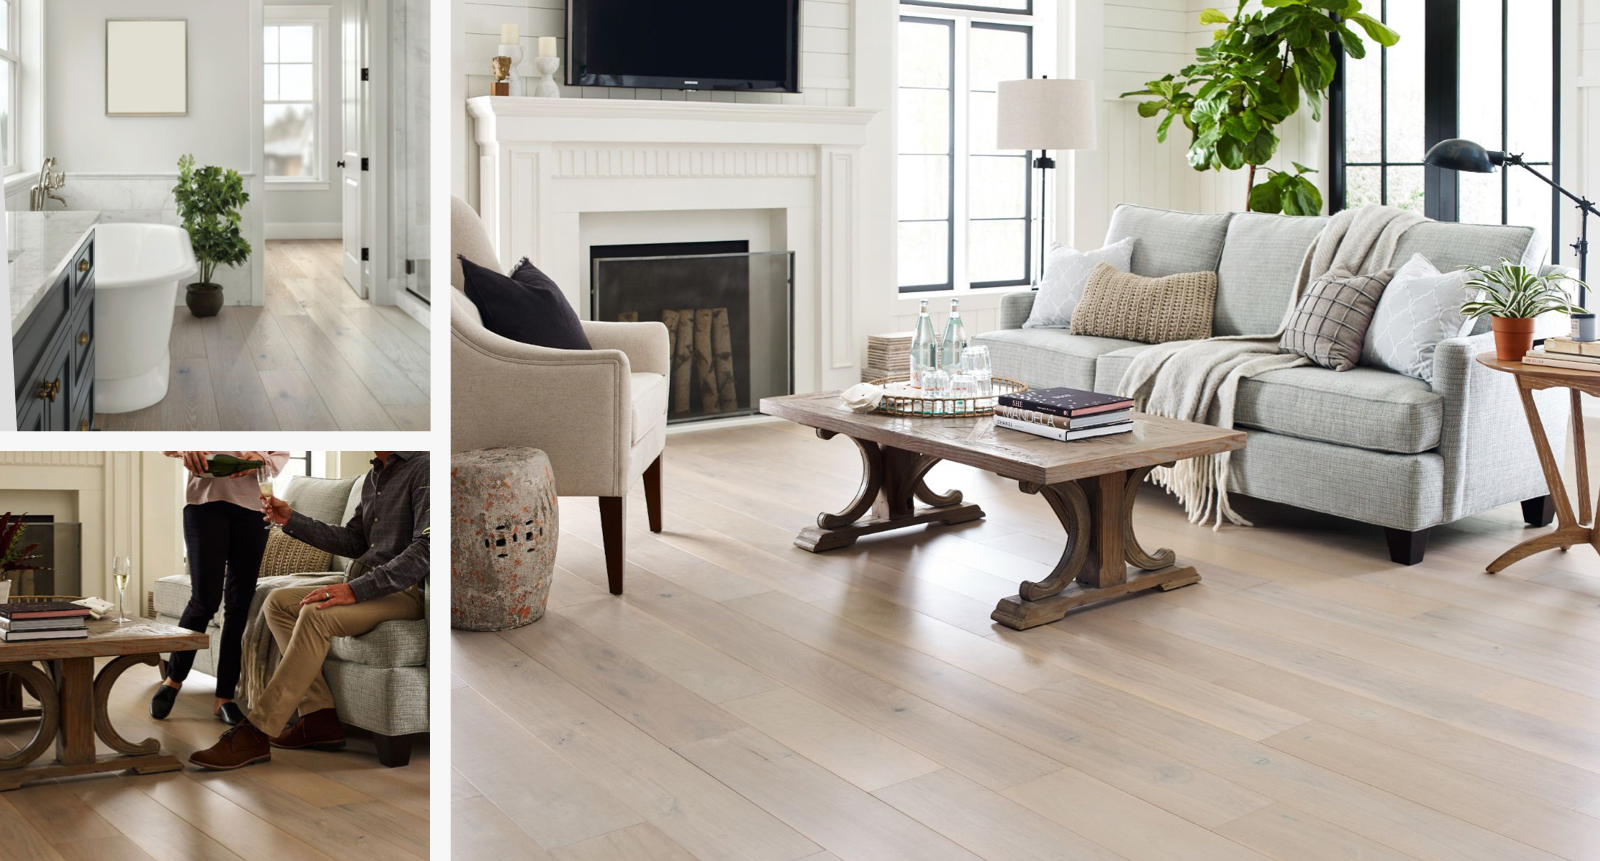 Floorte waterproof hardwood flooring for your home | Macco's Floor Covering Center